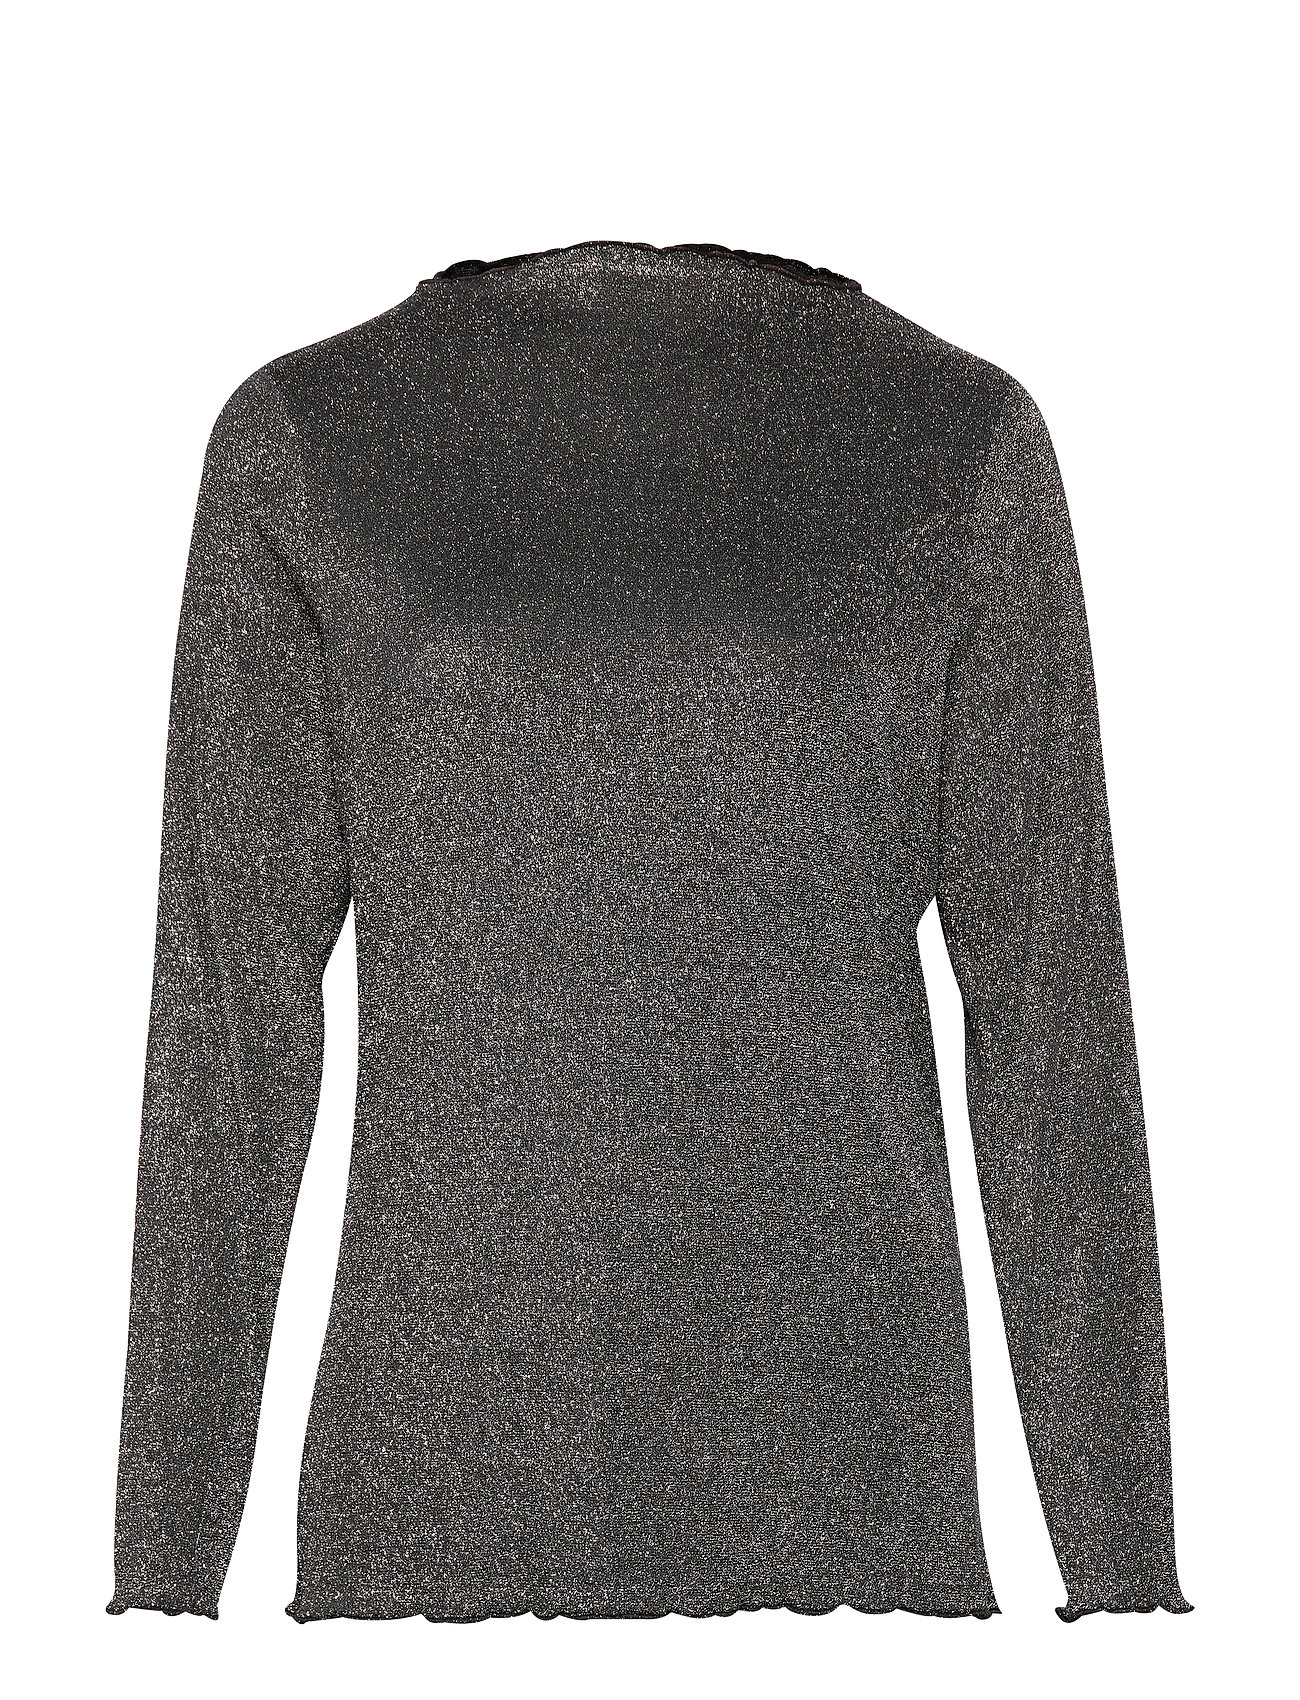 ONLY Carmakoma CARDICTE LS TOP - BLACK